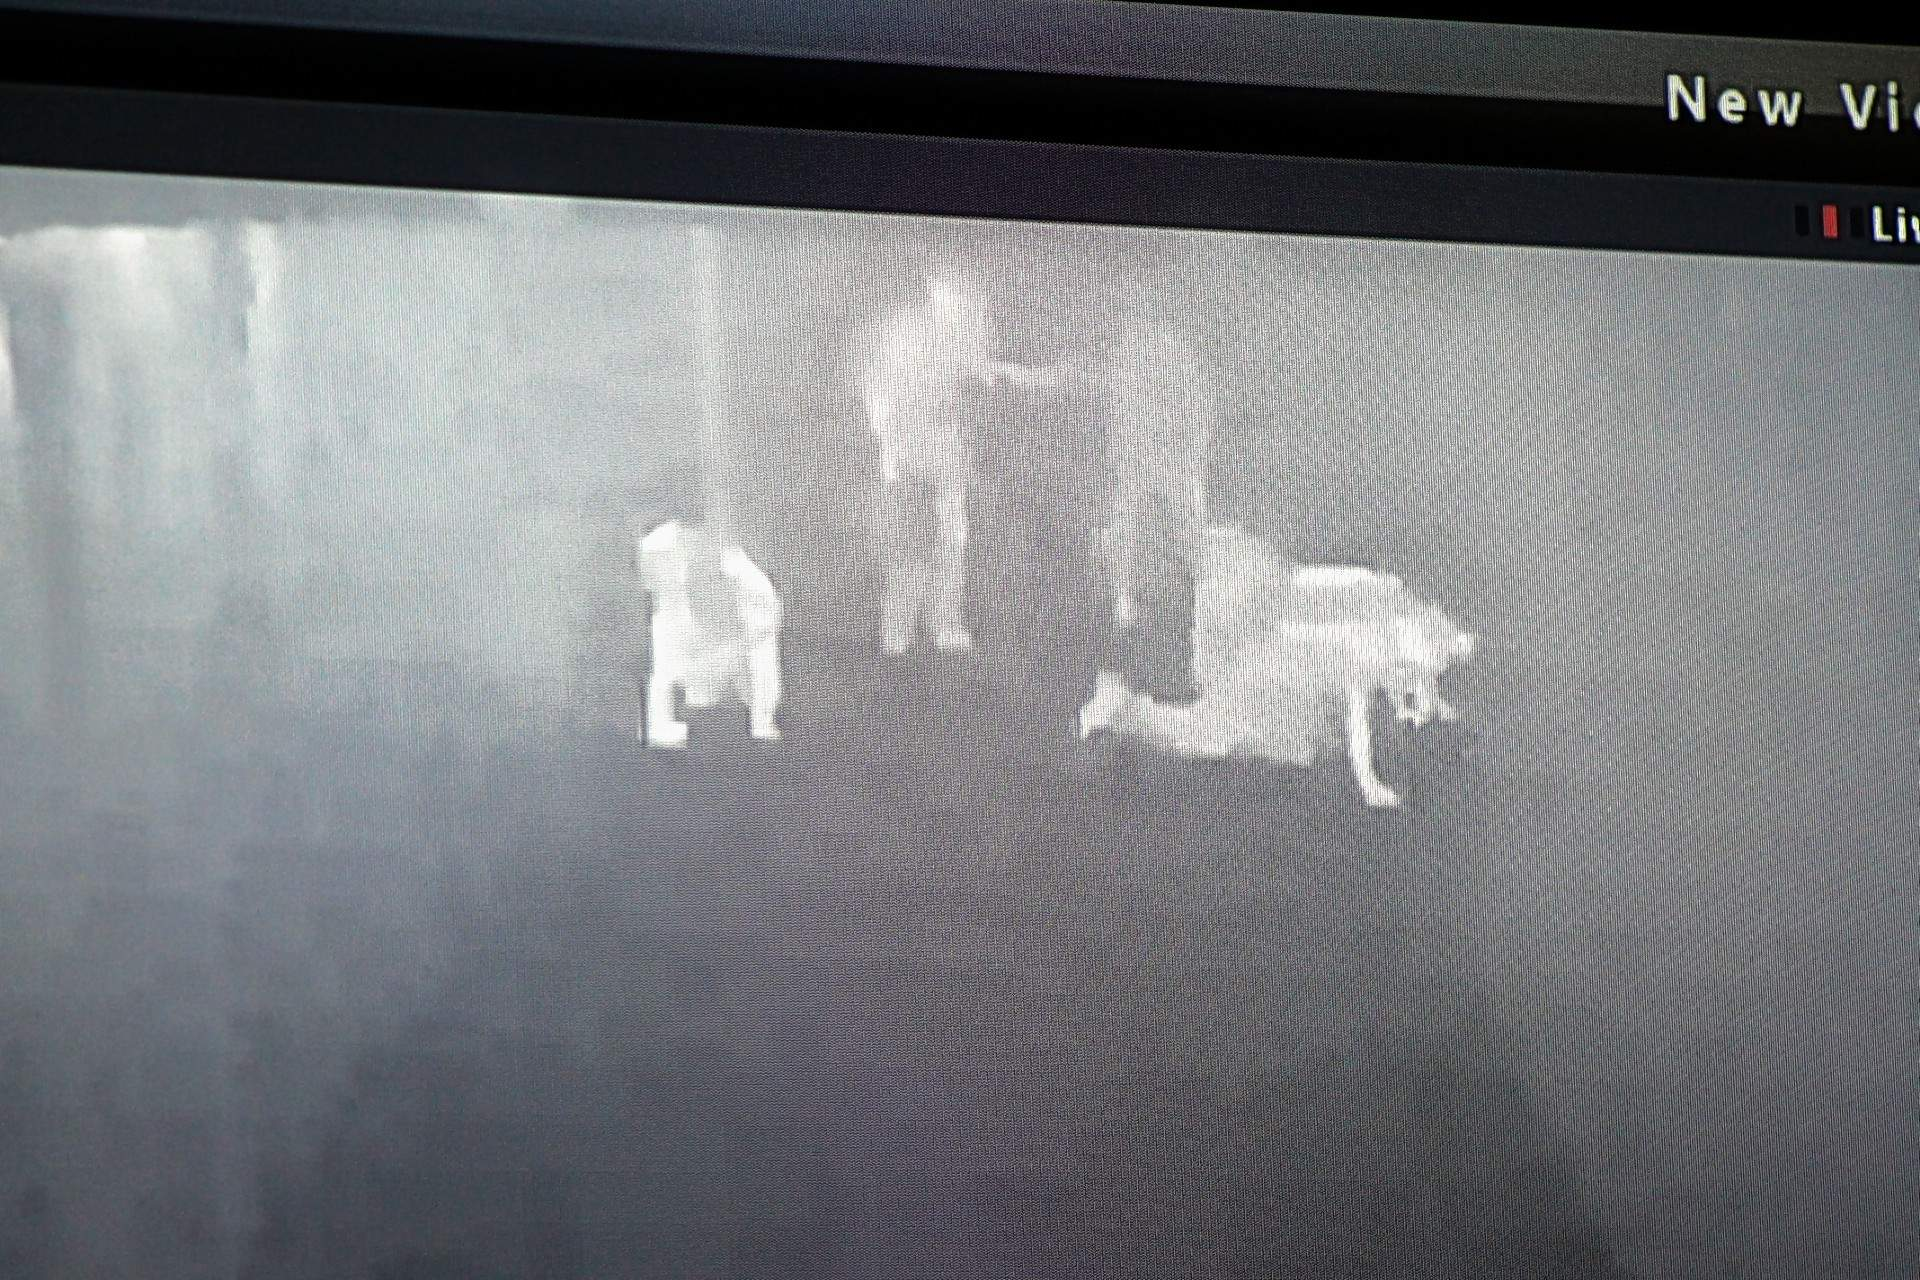 Hamilton County Coal of Dahlgren, the day one winner of the 2017 Mine Rescue and Skills Competition at SIC, is seen on the infrared cameras of the control room, crawling through the smoke-filled simulated mine.